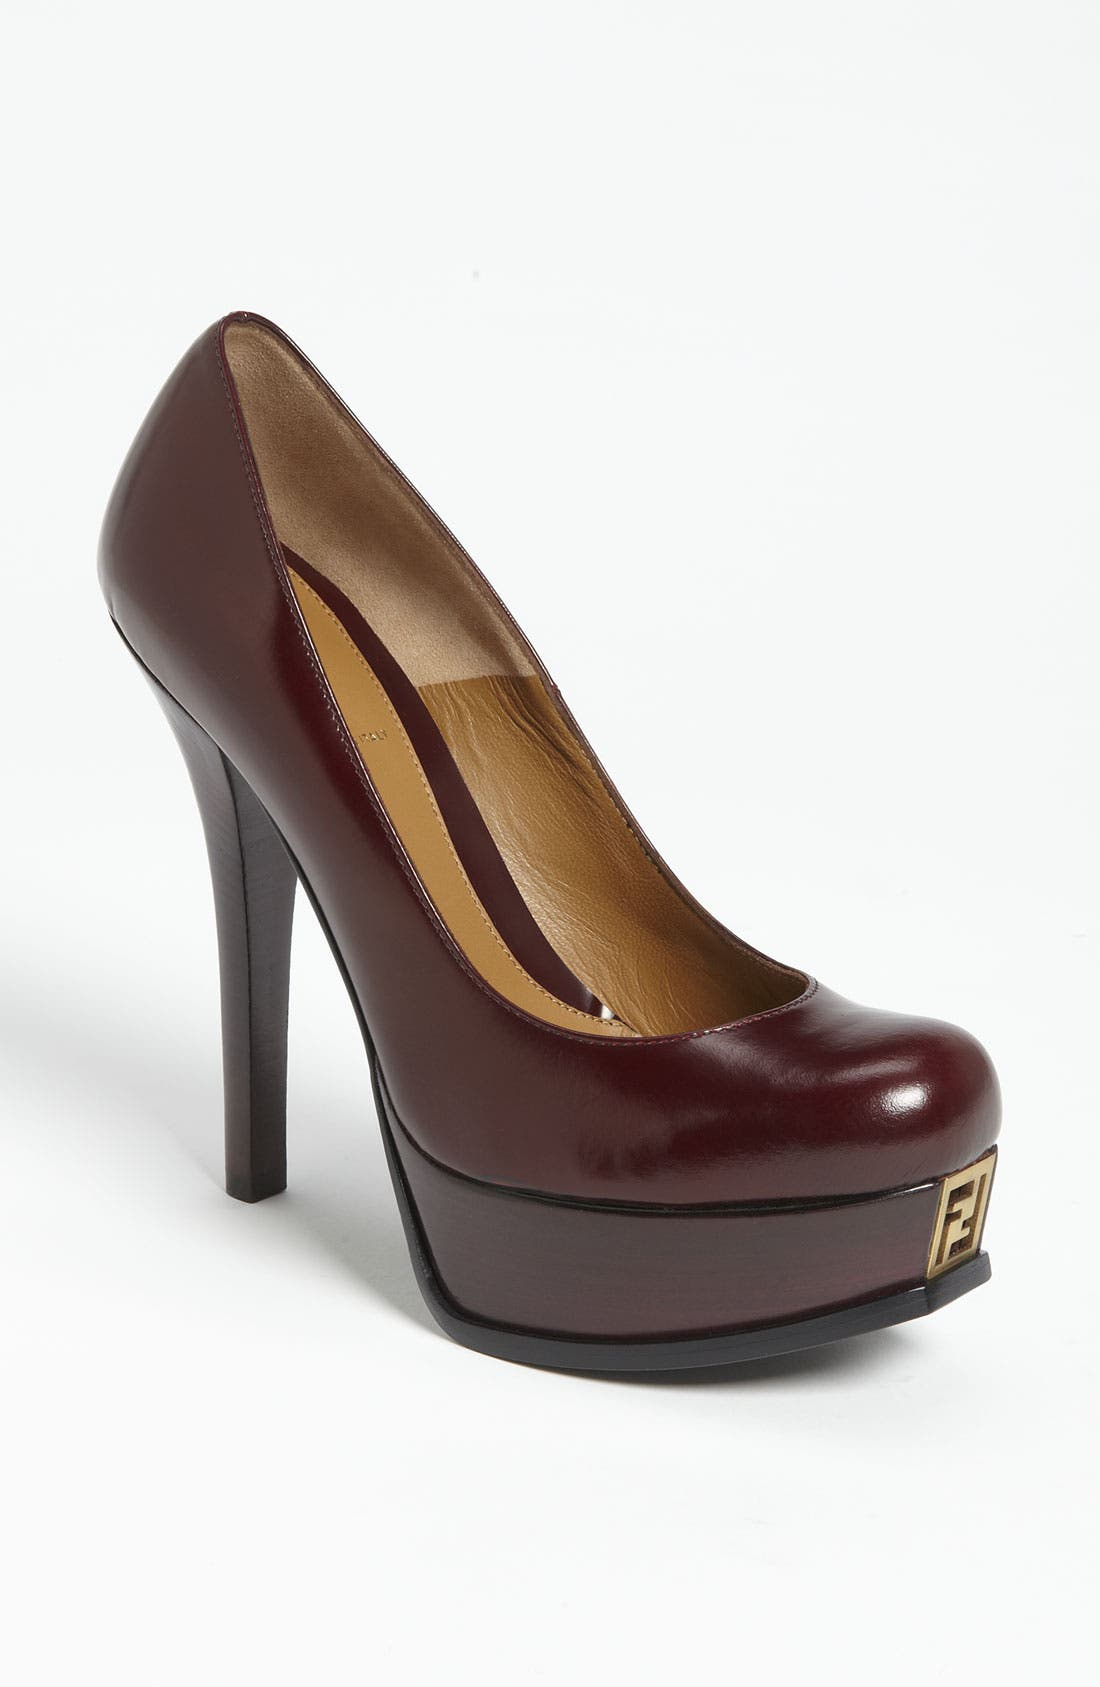 Alternate Image 1 Selected - Fendi 'Fendista' Platform Pump